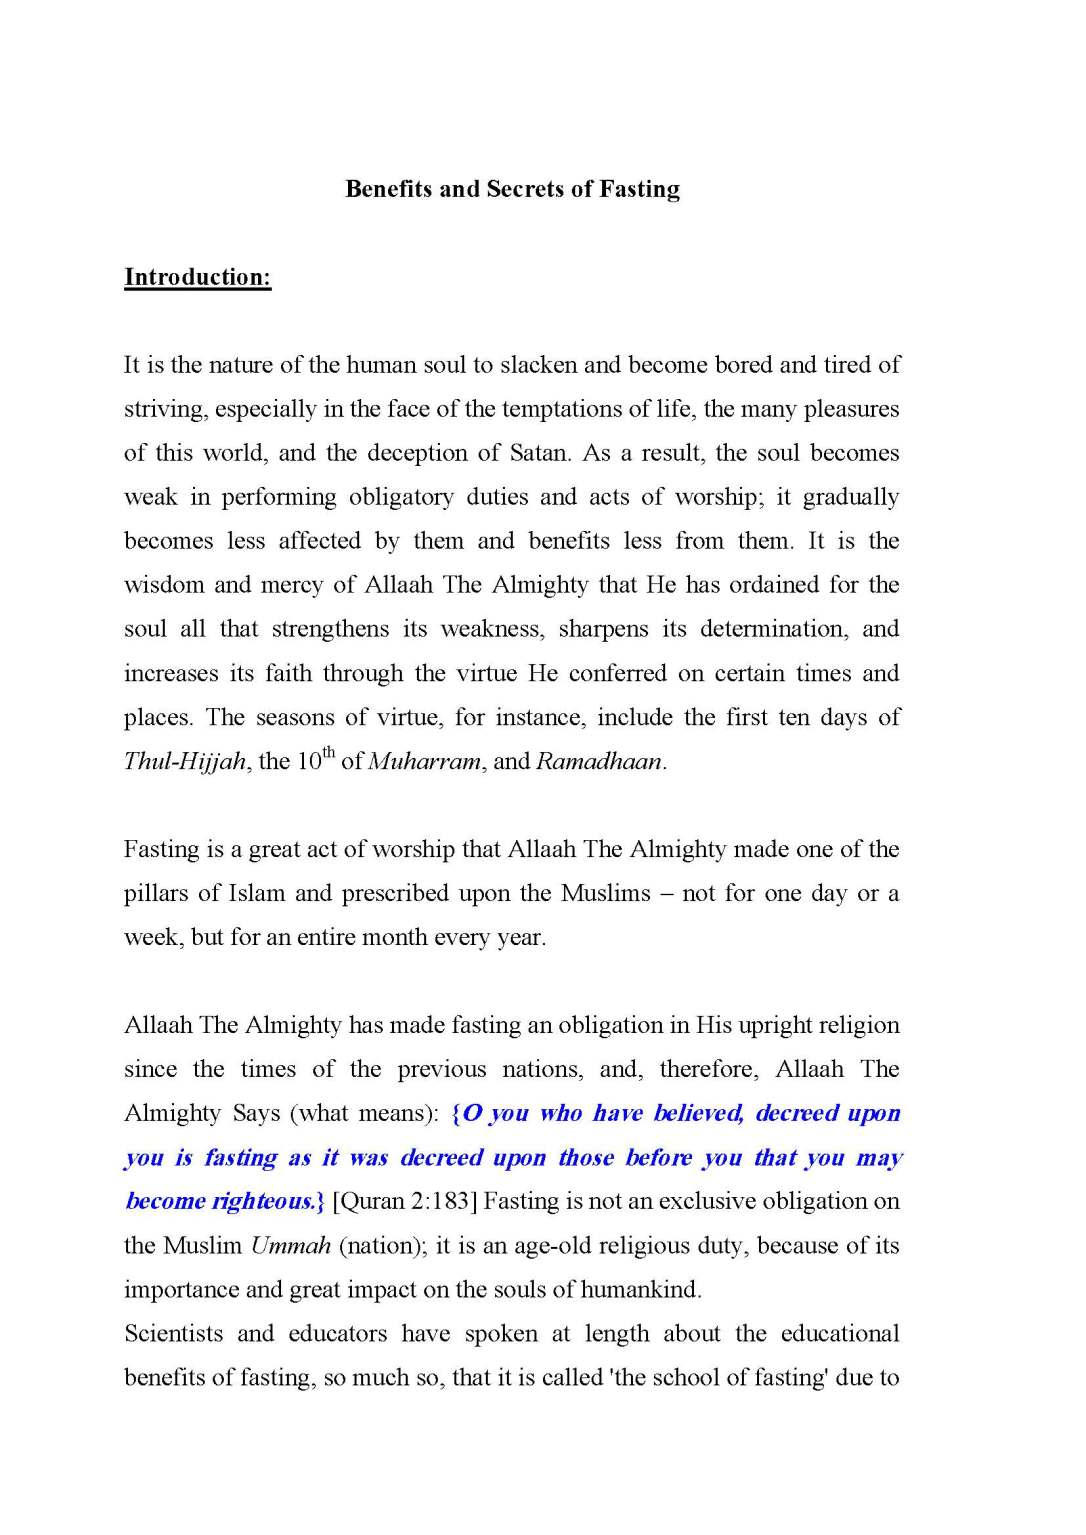 Benefits_and_Secrets_of_Fasting_Page_01